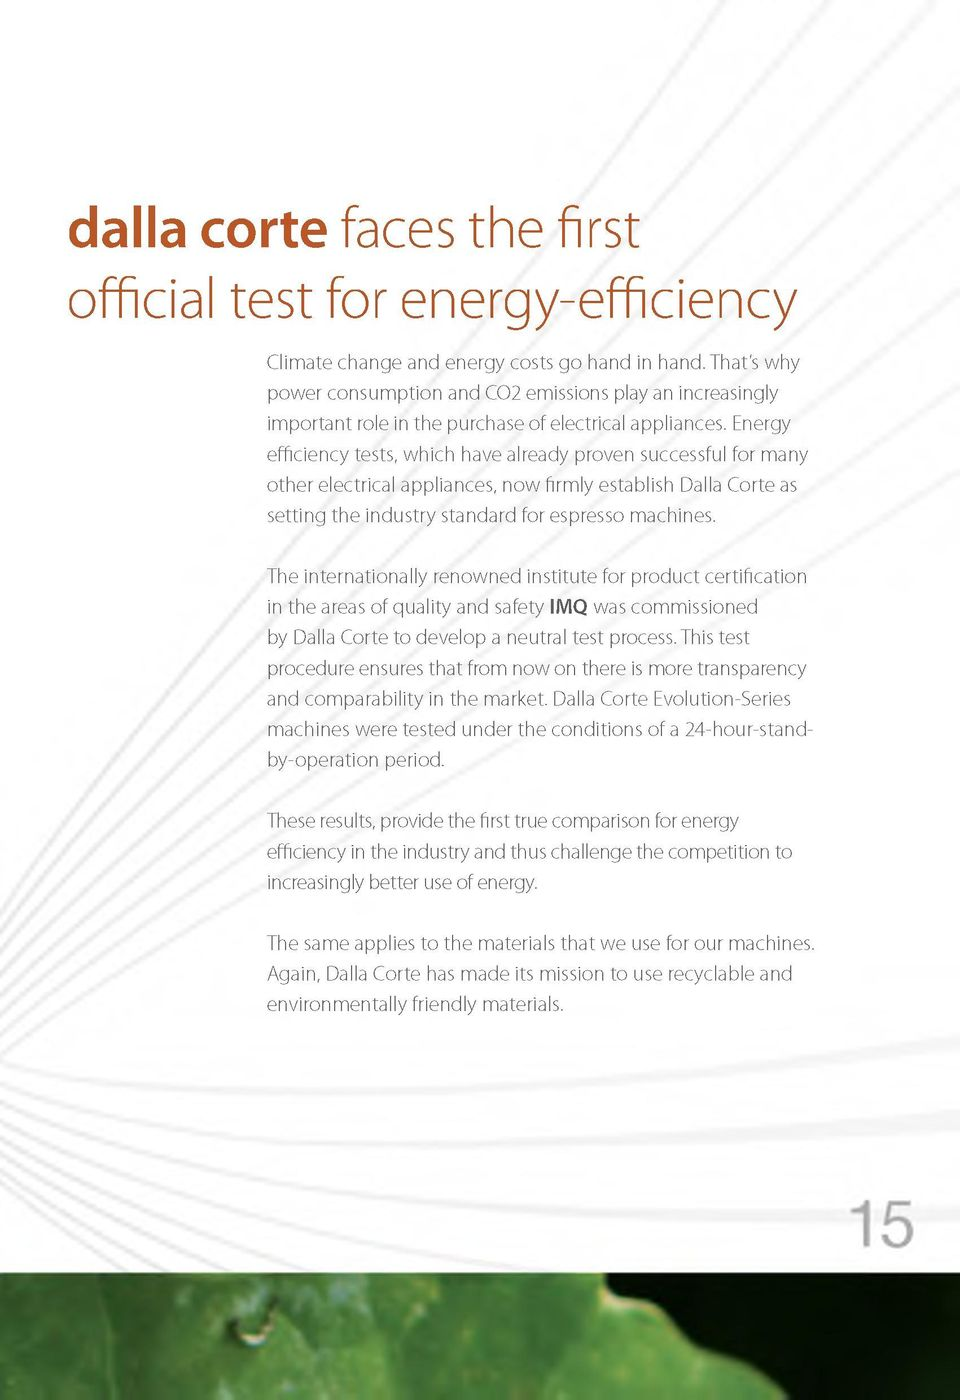 Energy efficiency tests, w hich have already proven successful for many o th er electrical appliances, n o w firm ly establish Dalla Corte as setting the industry standard for espresso machines.